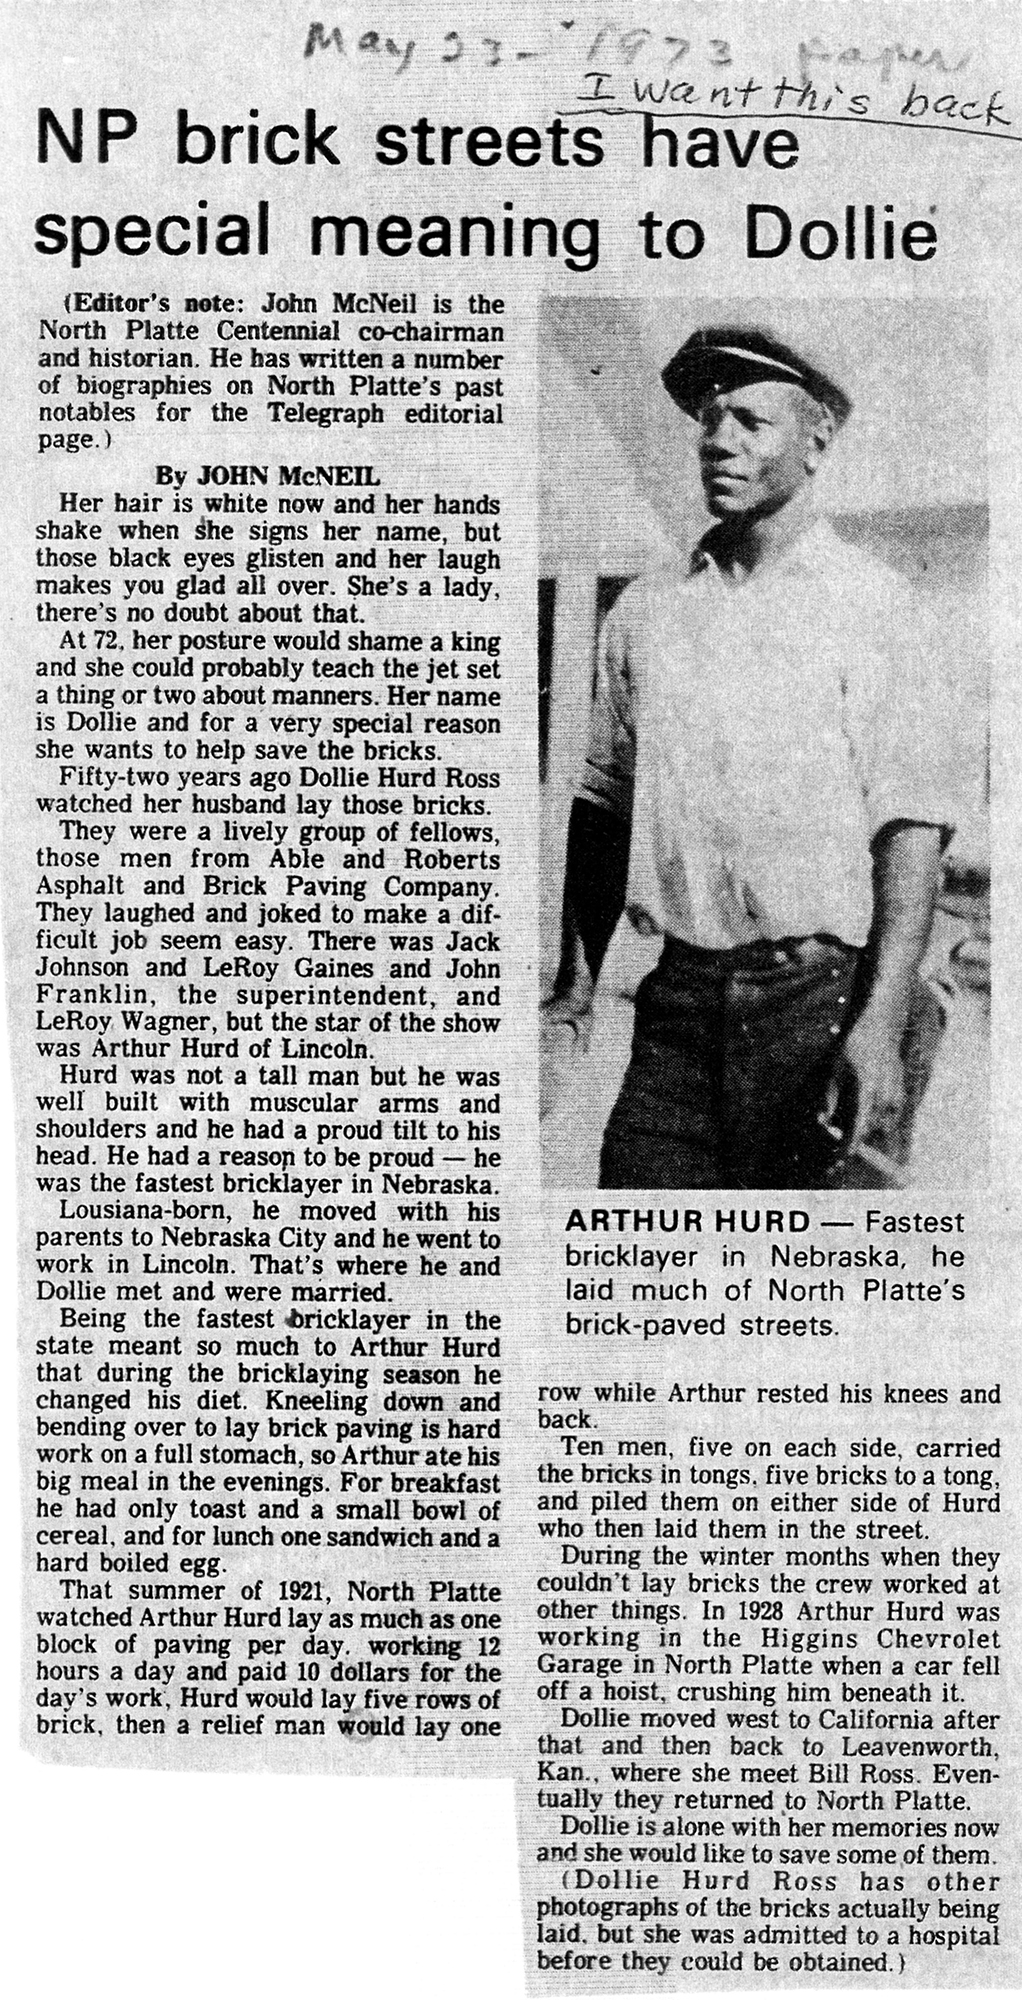 Arthur Hurd, 'the fastest bricklayer in Nebraska.' Source: John McNeil, 'NP Streets have special meaning to Dollie,' North Platte Telegraph, May 23, 1973. Courtesy of The North Platte Bulletin.